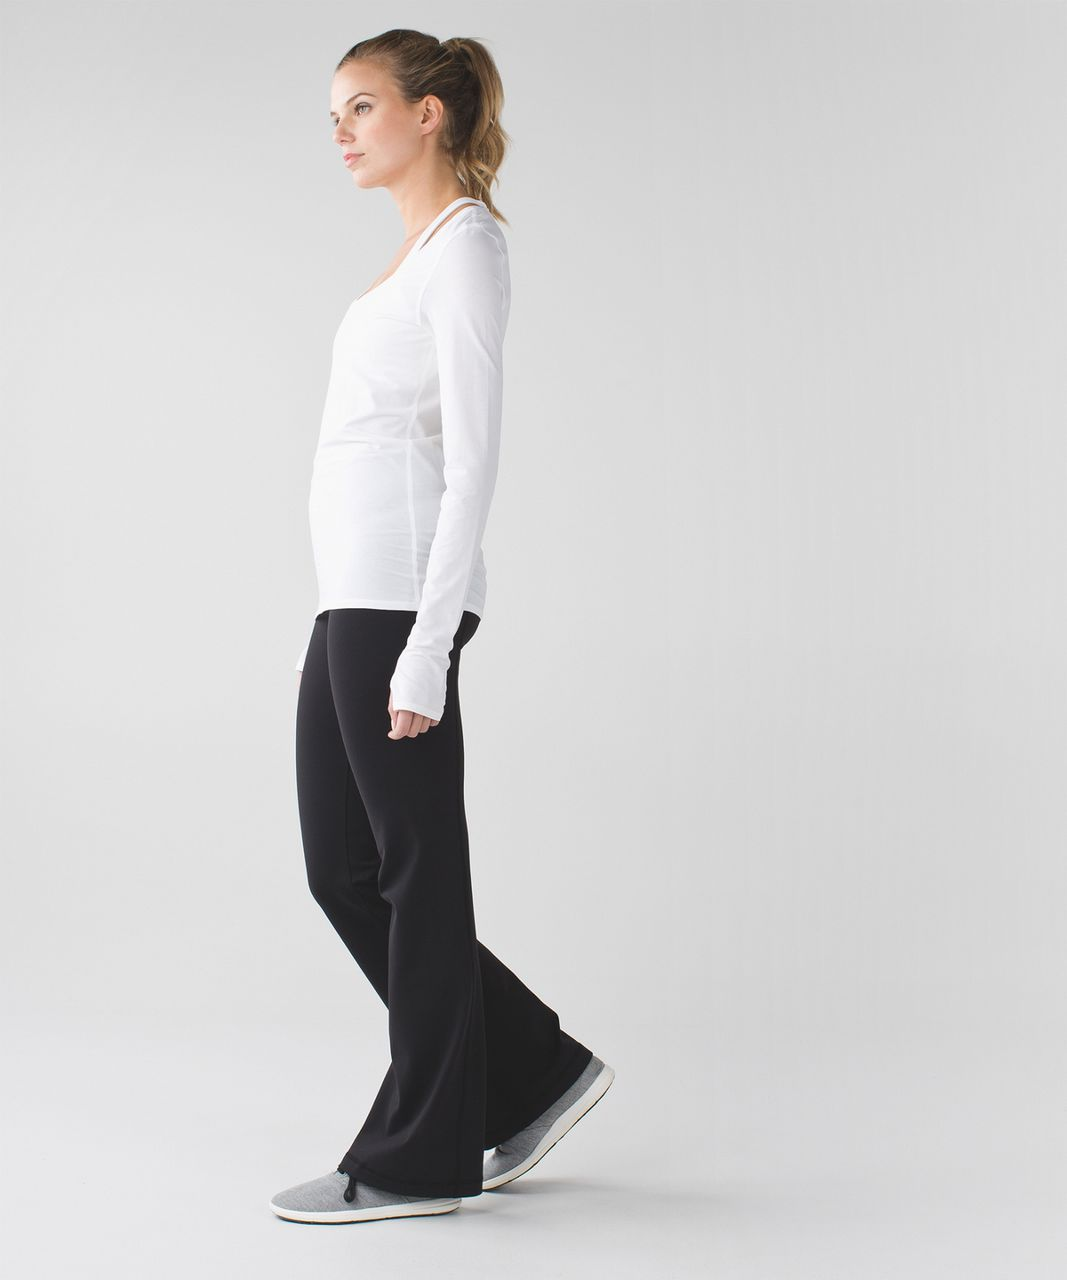 Lululemon Groove Pant III (Regular) - Black / Flashback Static Powdered Rose Tender Violet